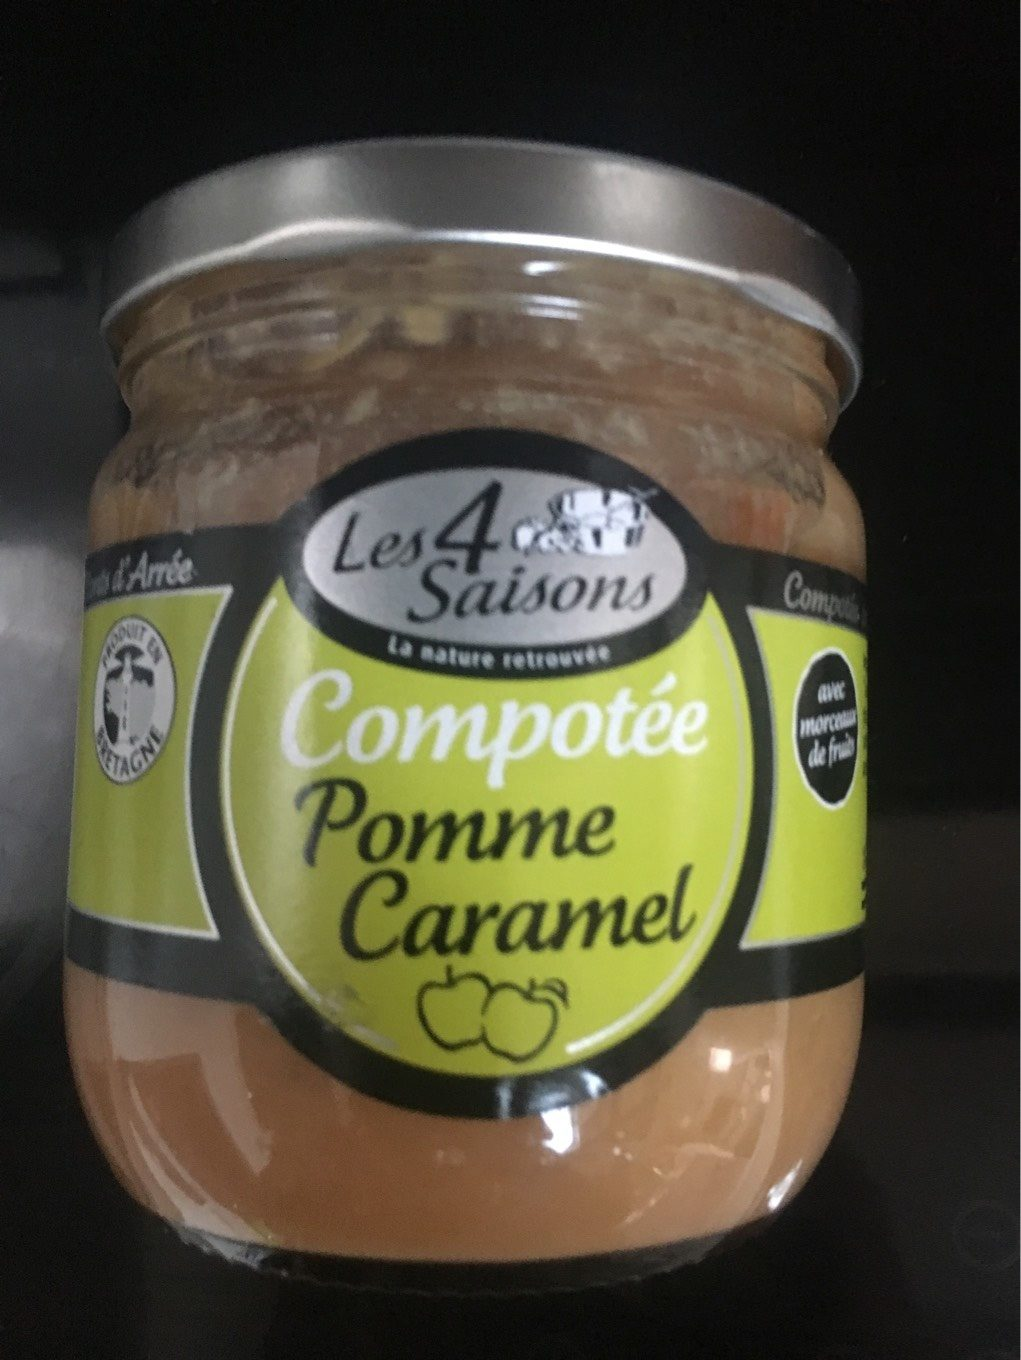 Compotee pomme caramel - Product - fr